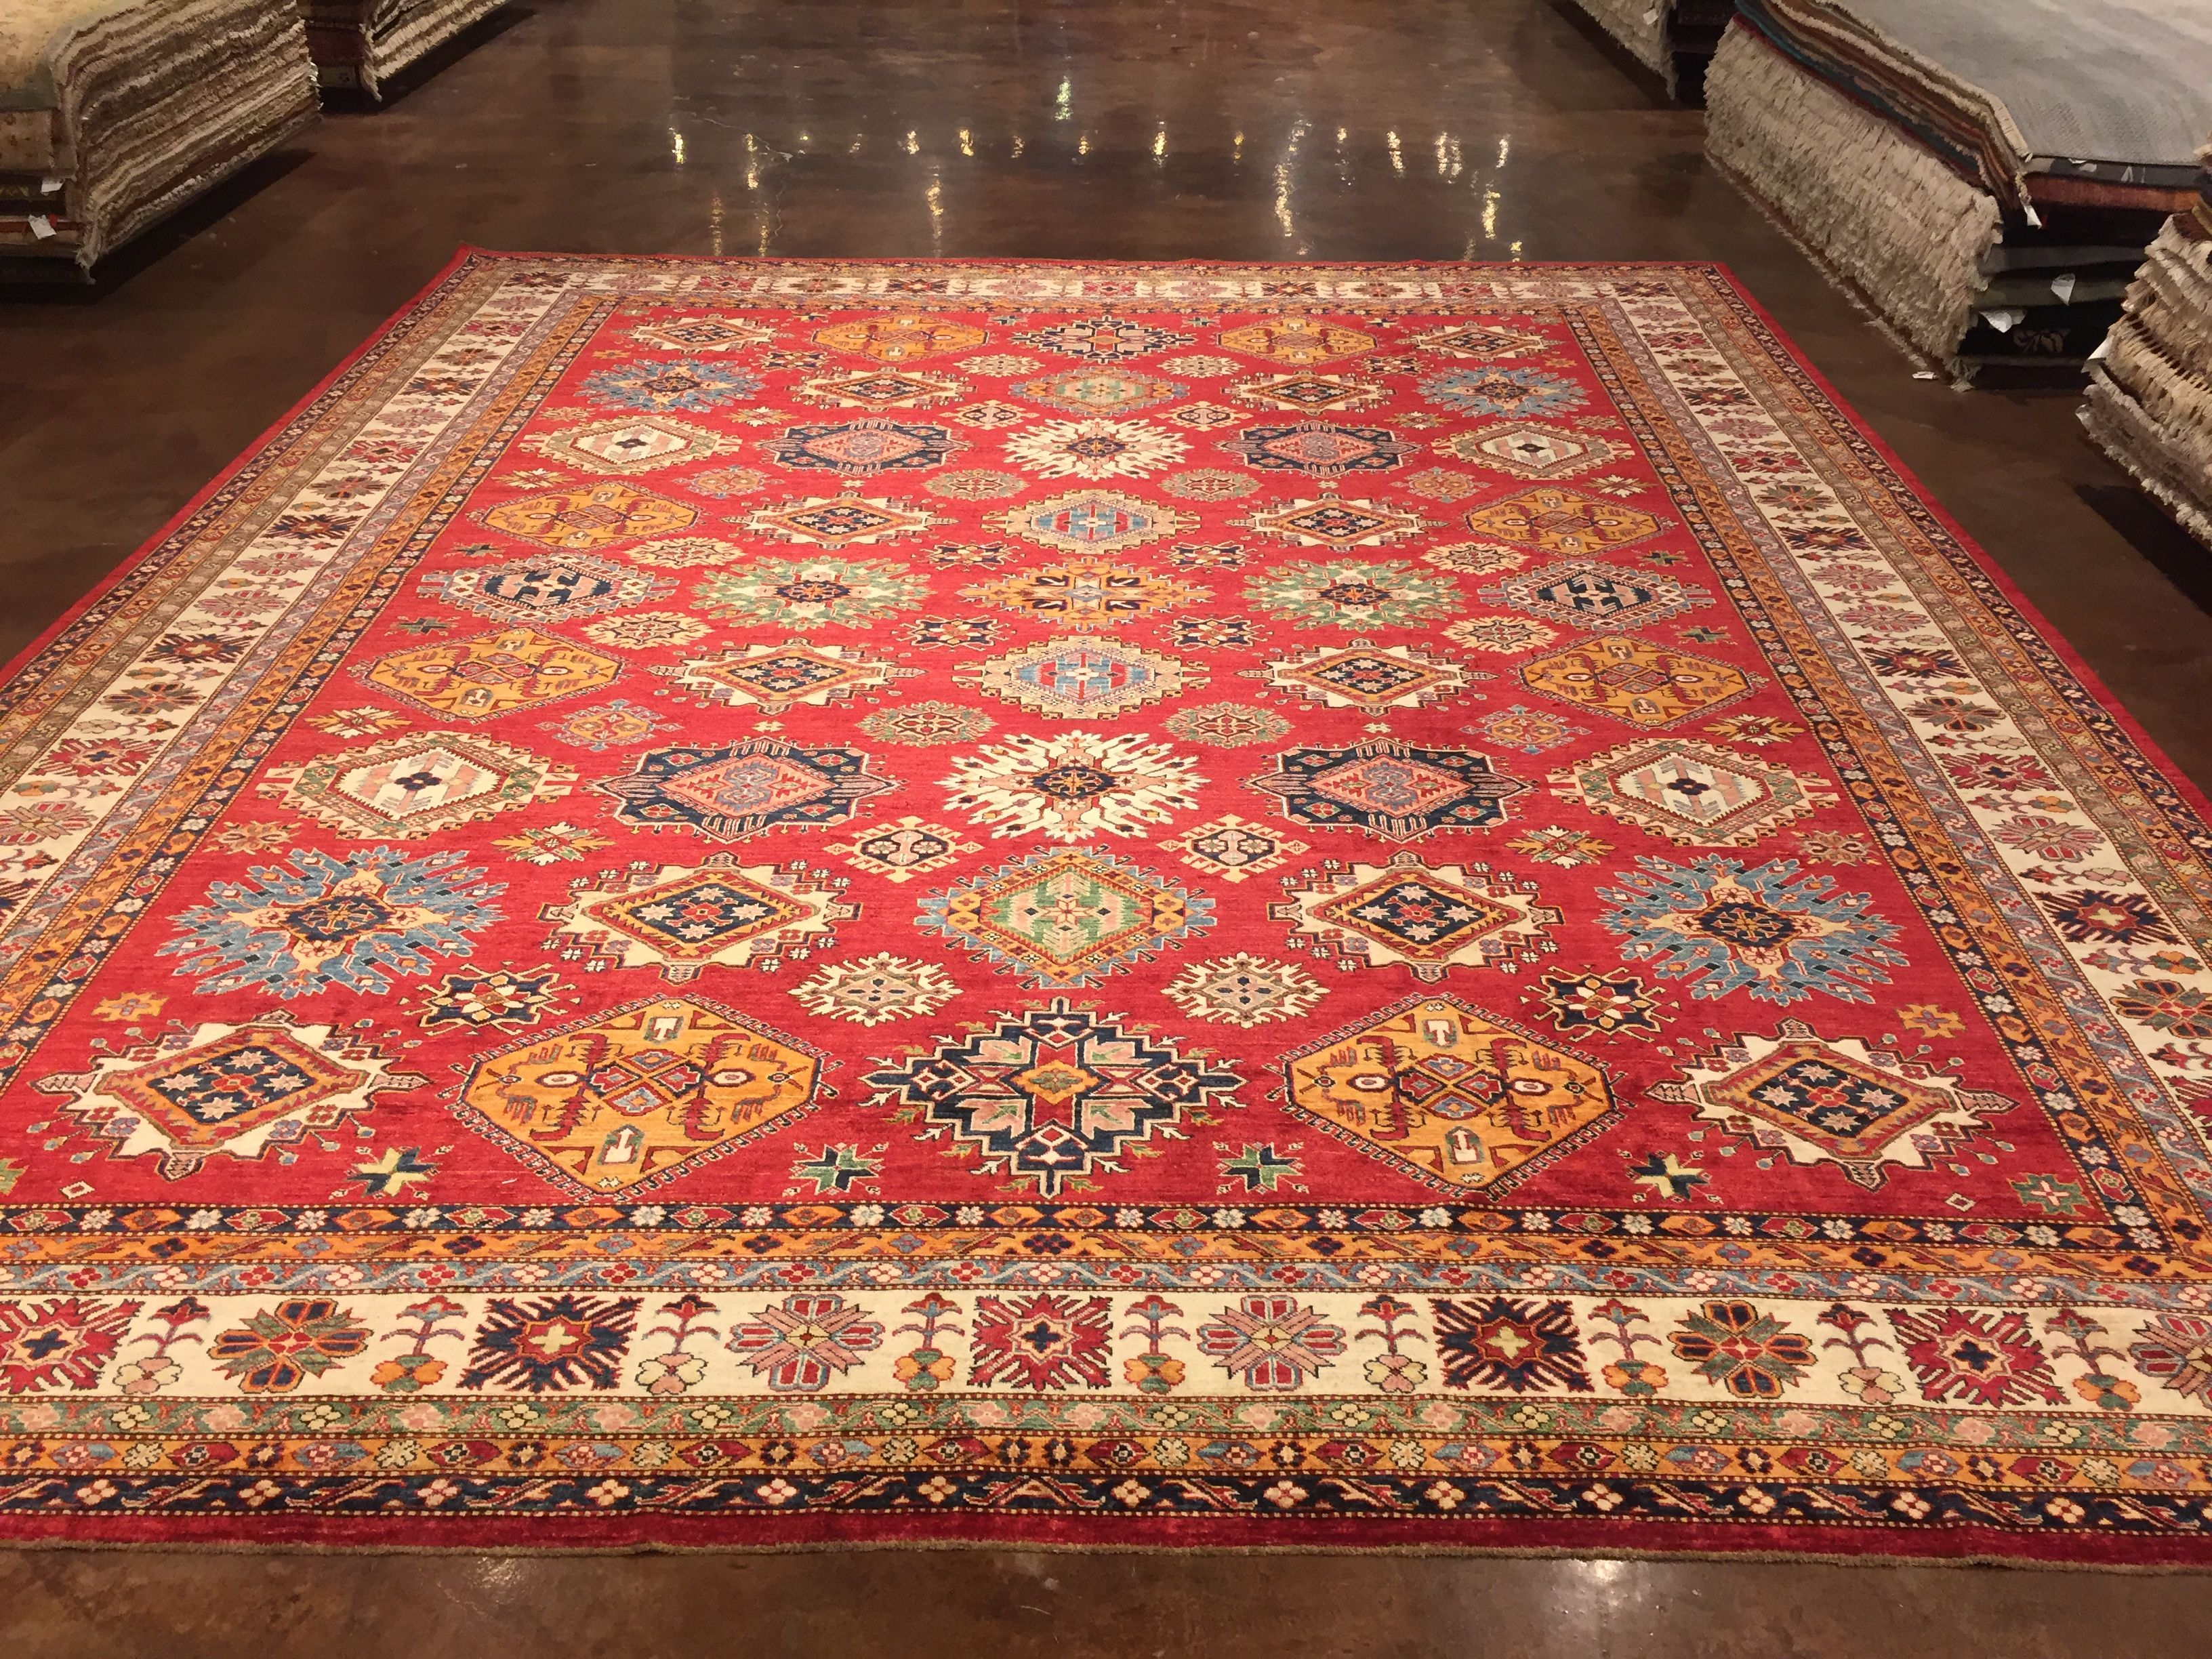 Afghan Kazak 14x18 Perfect Size For Living Room Dining Area Or